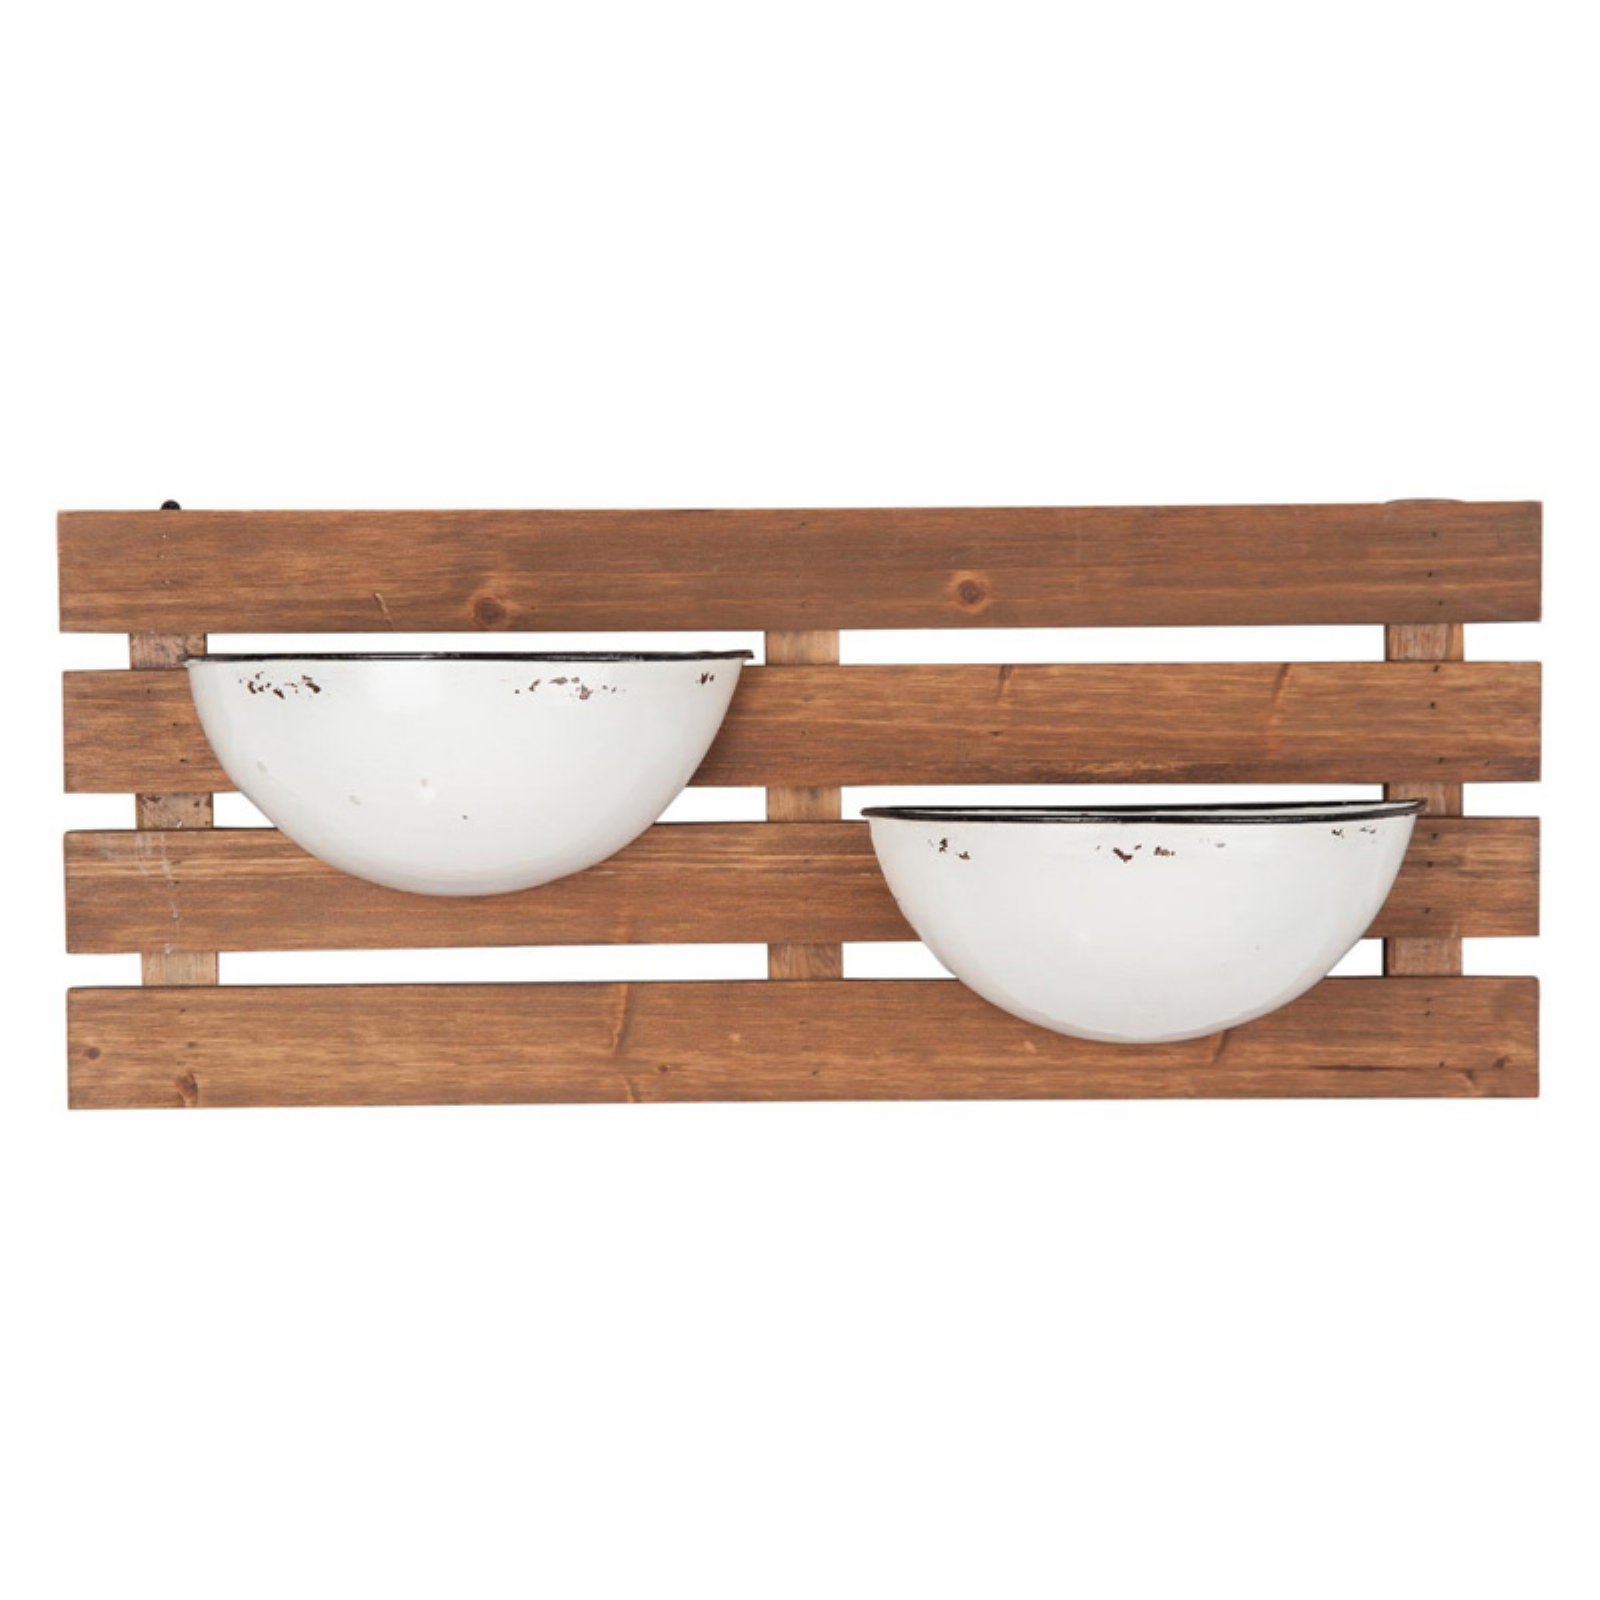 Foreside Home and Garden Enamel Pot Wall Planter - Walmart.com